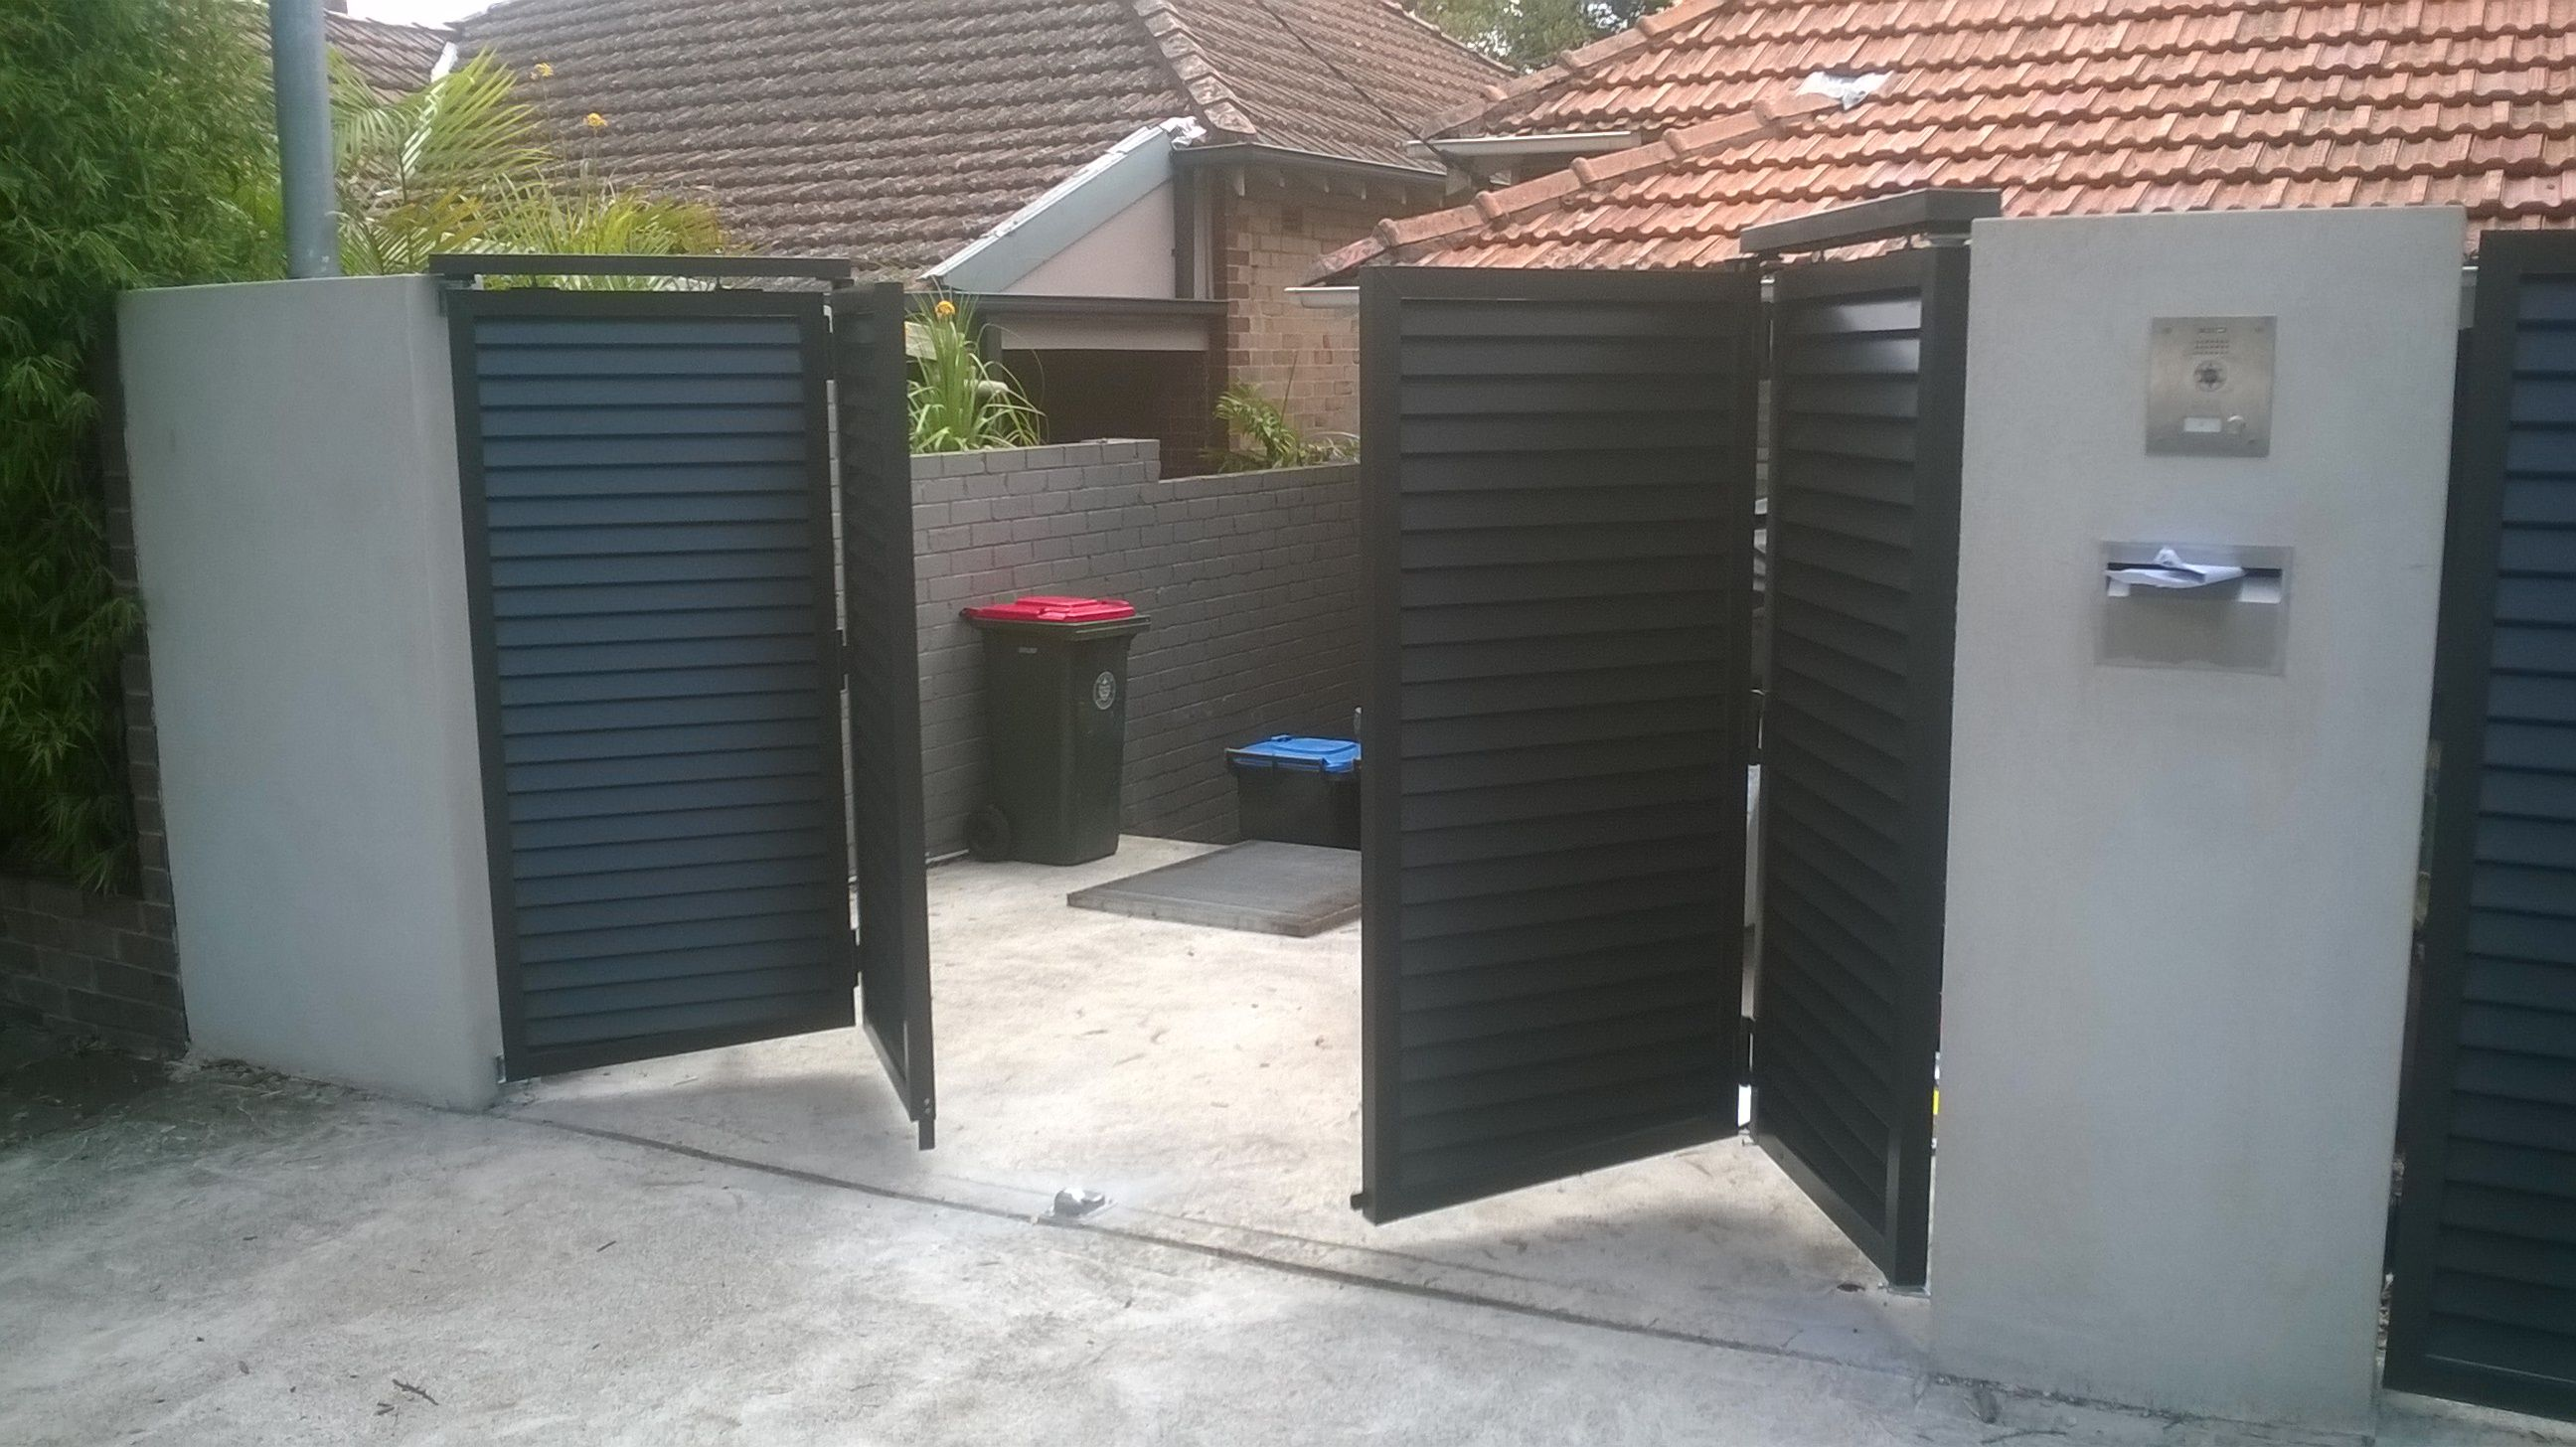 New Bi Folding Automatic Gates Allows You To Have Automatic Swing Gates On A Property With A Short Driveway And Door Gate Design Driveway Gate Automatic Gate